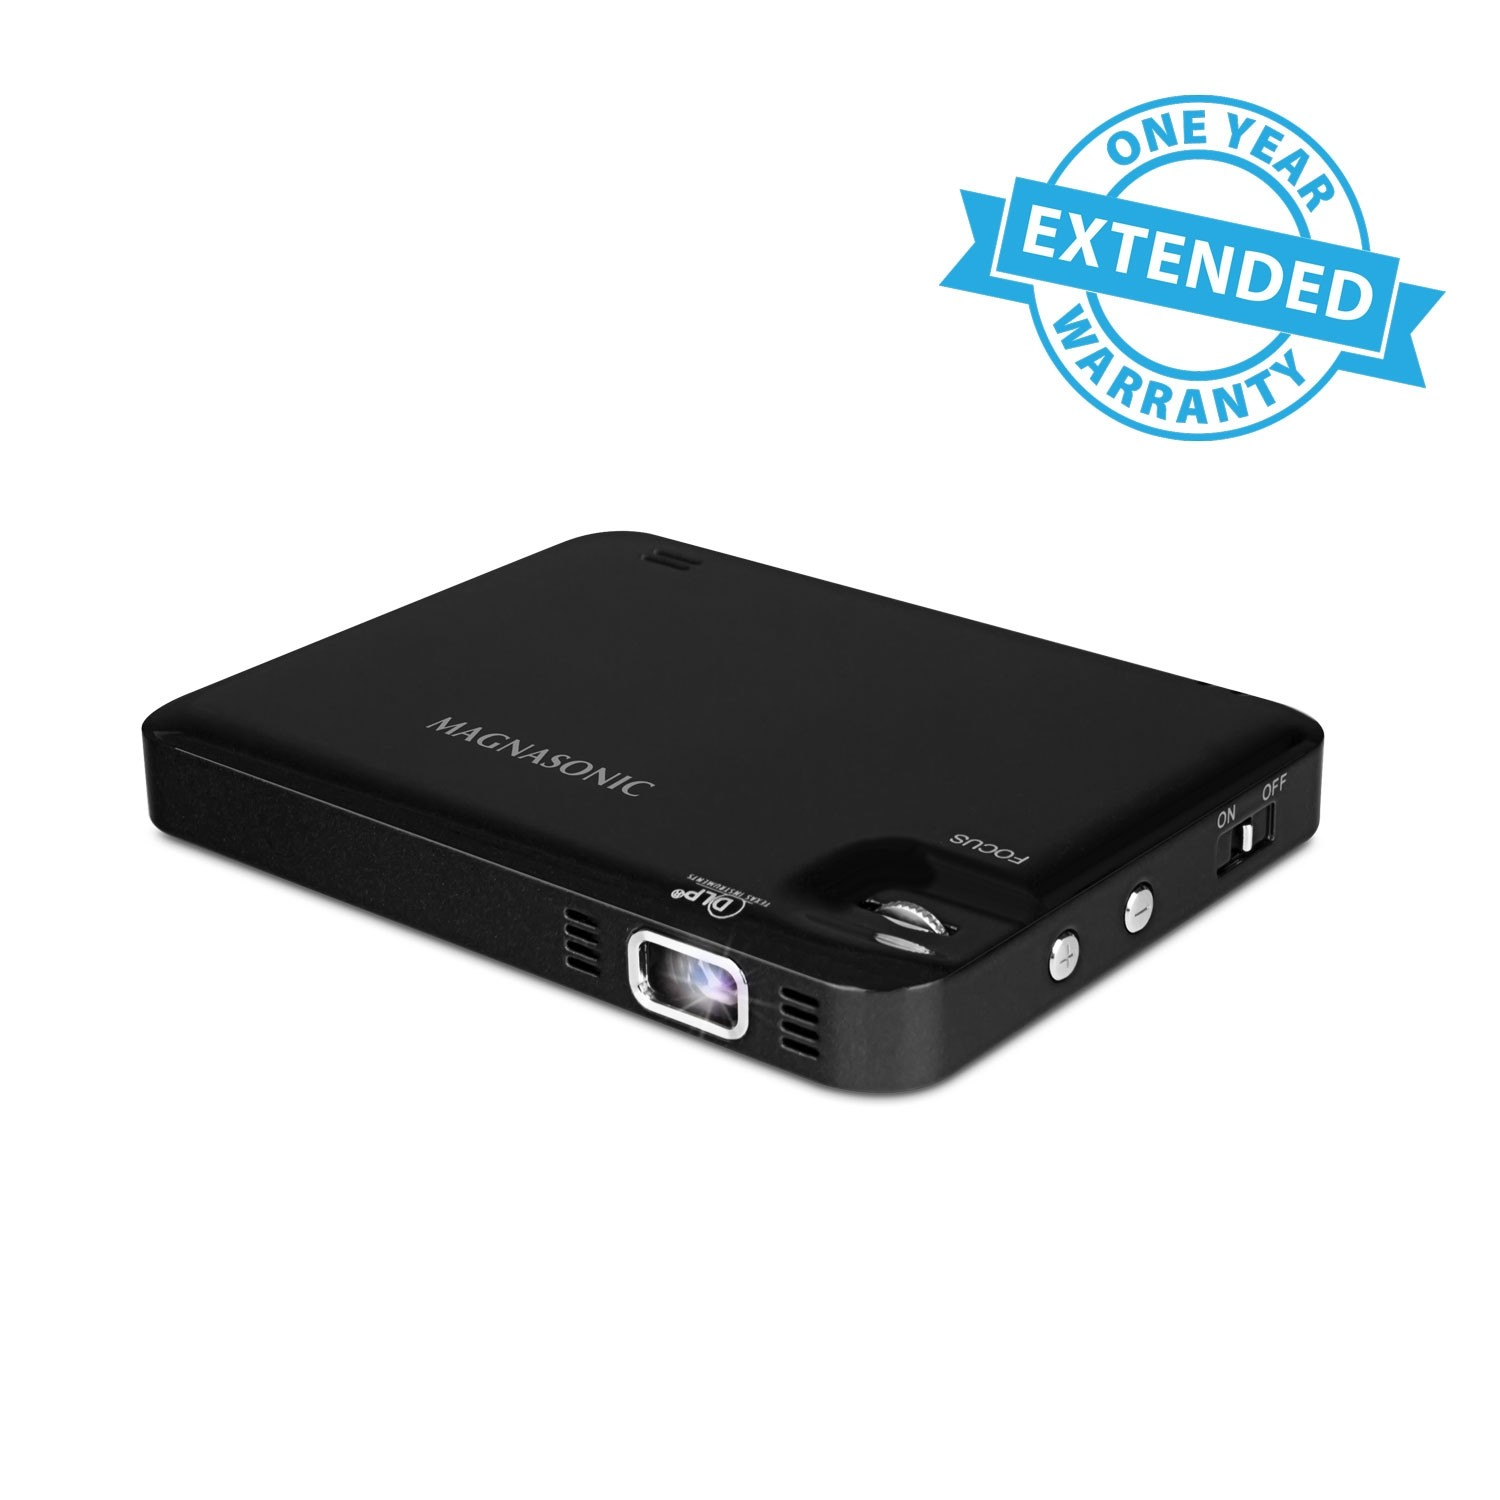 1 Year Warranty for LED Pocket Pico Video Projector